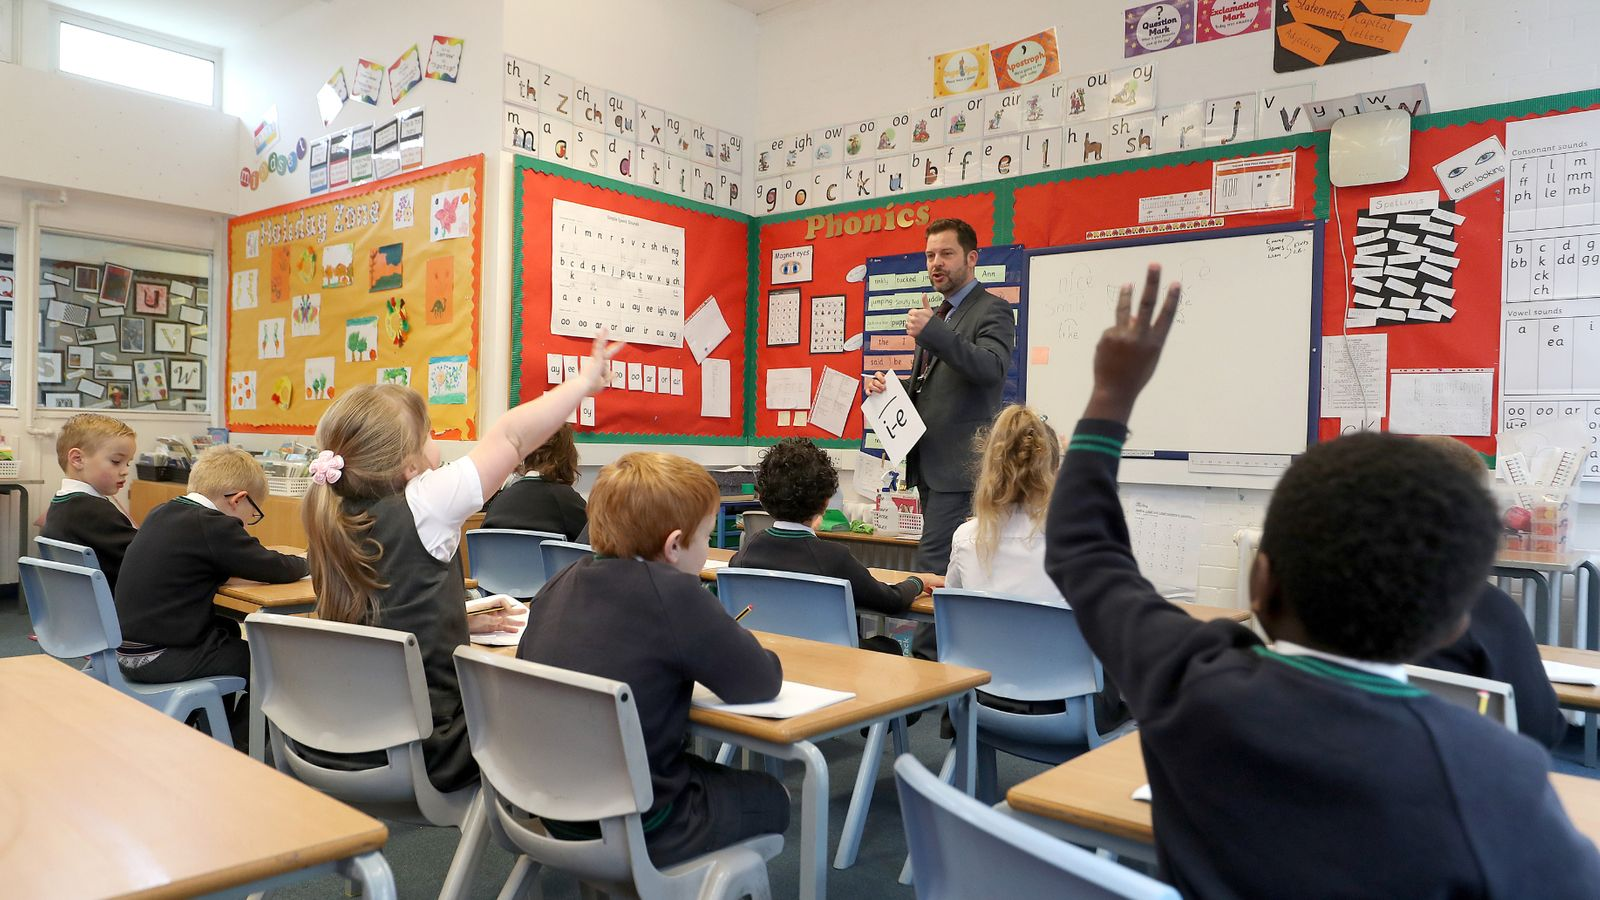 Terms Such As 'White Privilege' Have Contributed To 'Neglect' Of White Pupils, Report Finds